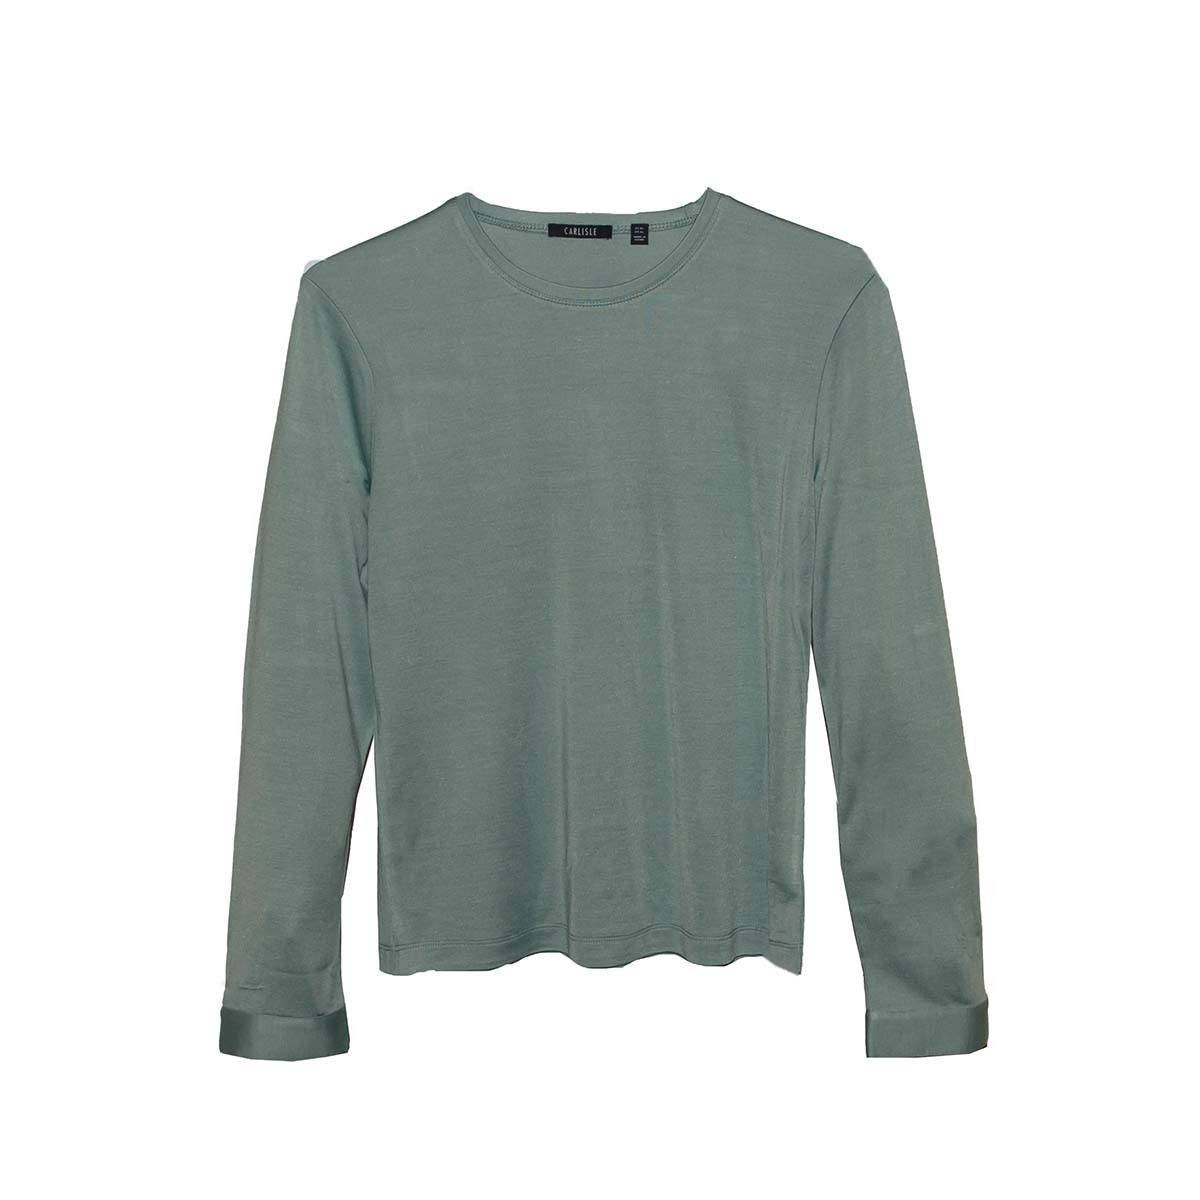 Green Silk Long Sleeve Top by Carlisle, XL - Extra Large, New Old Stock